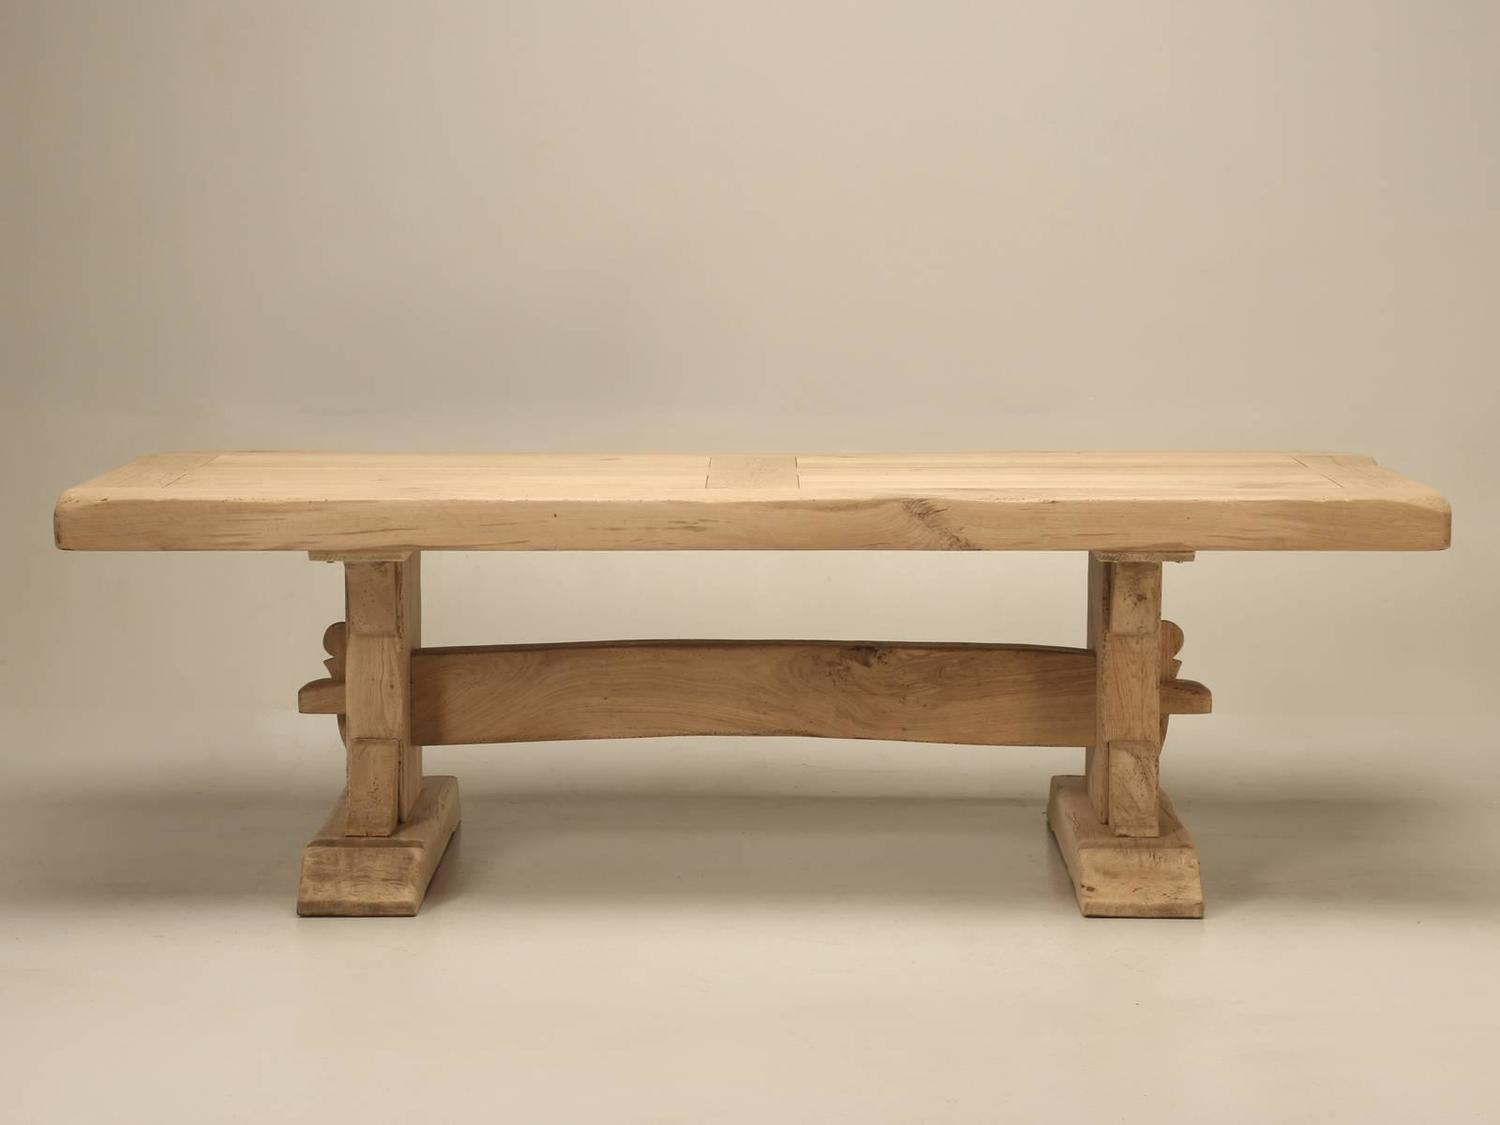 Antique french oak trestle dining table at 1stdibs - Antique french dining tables ...